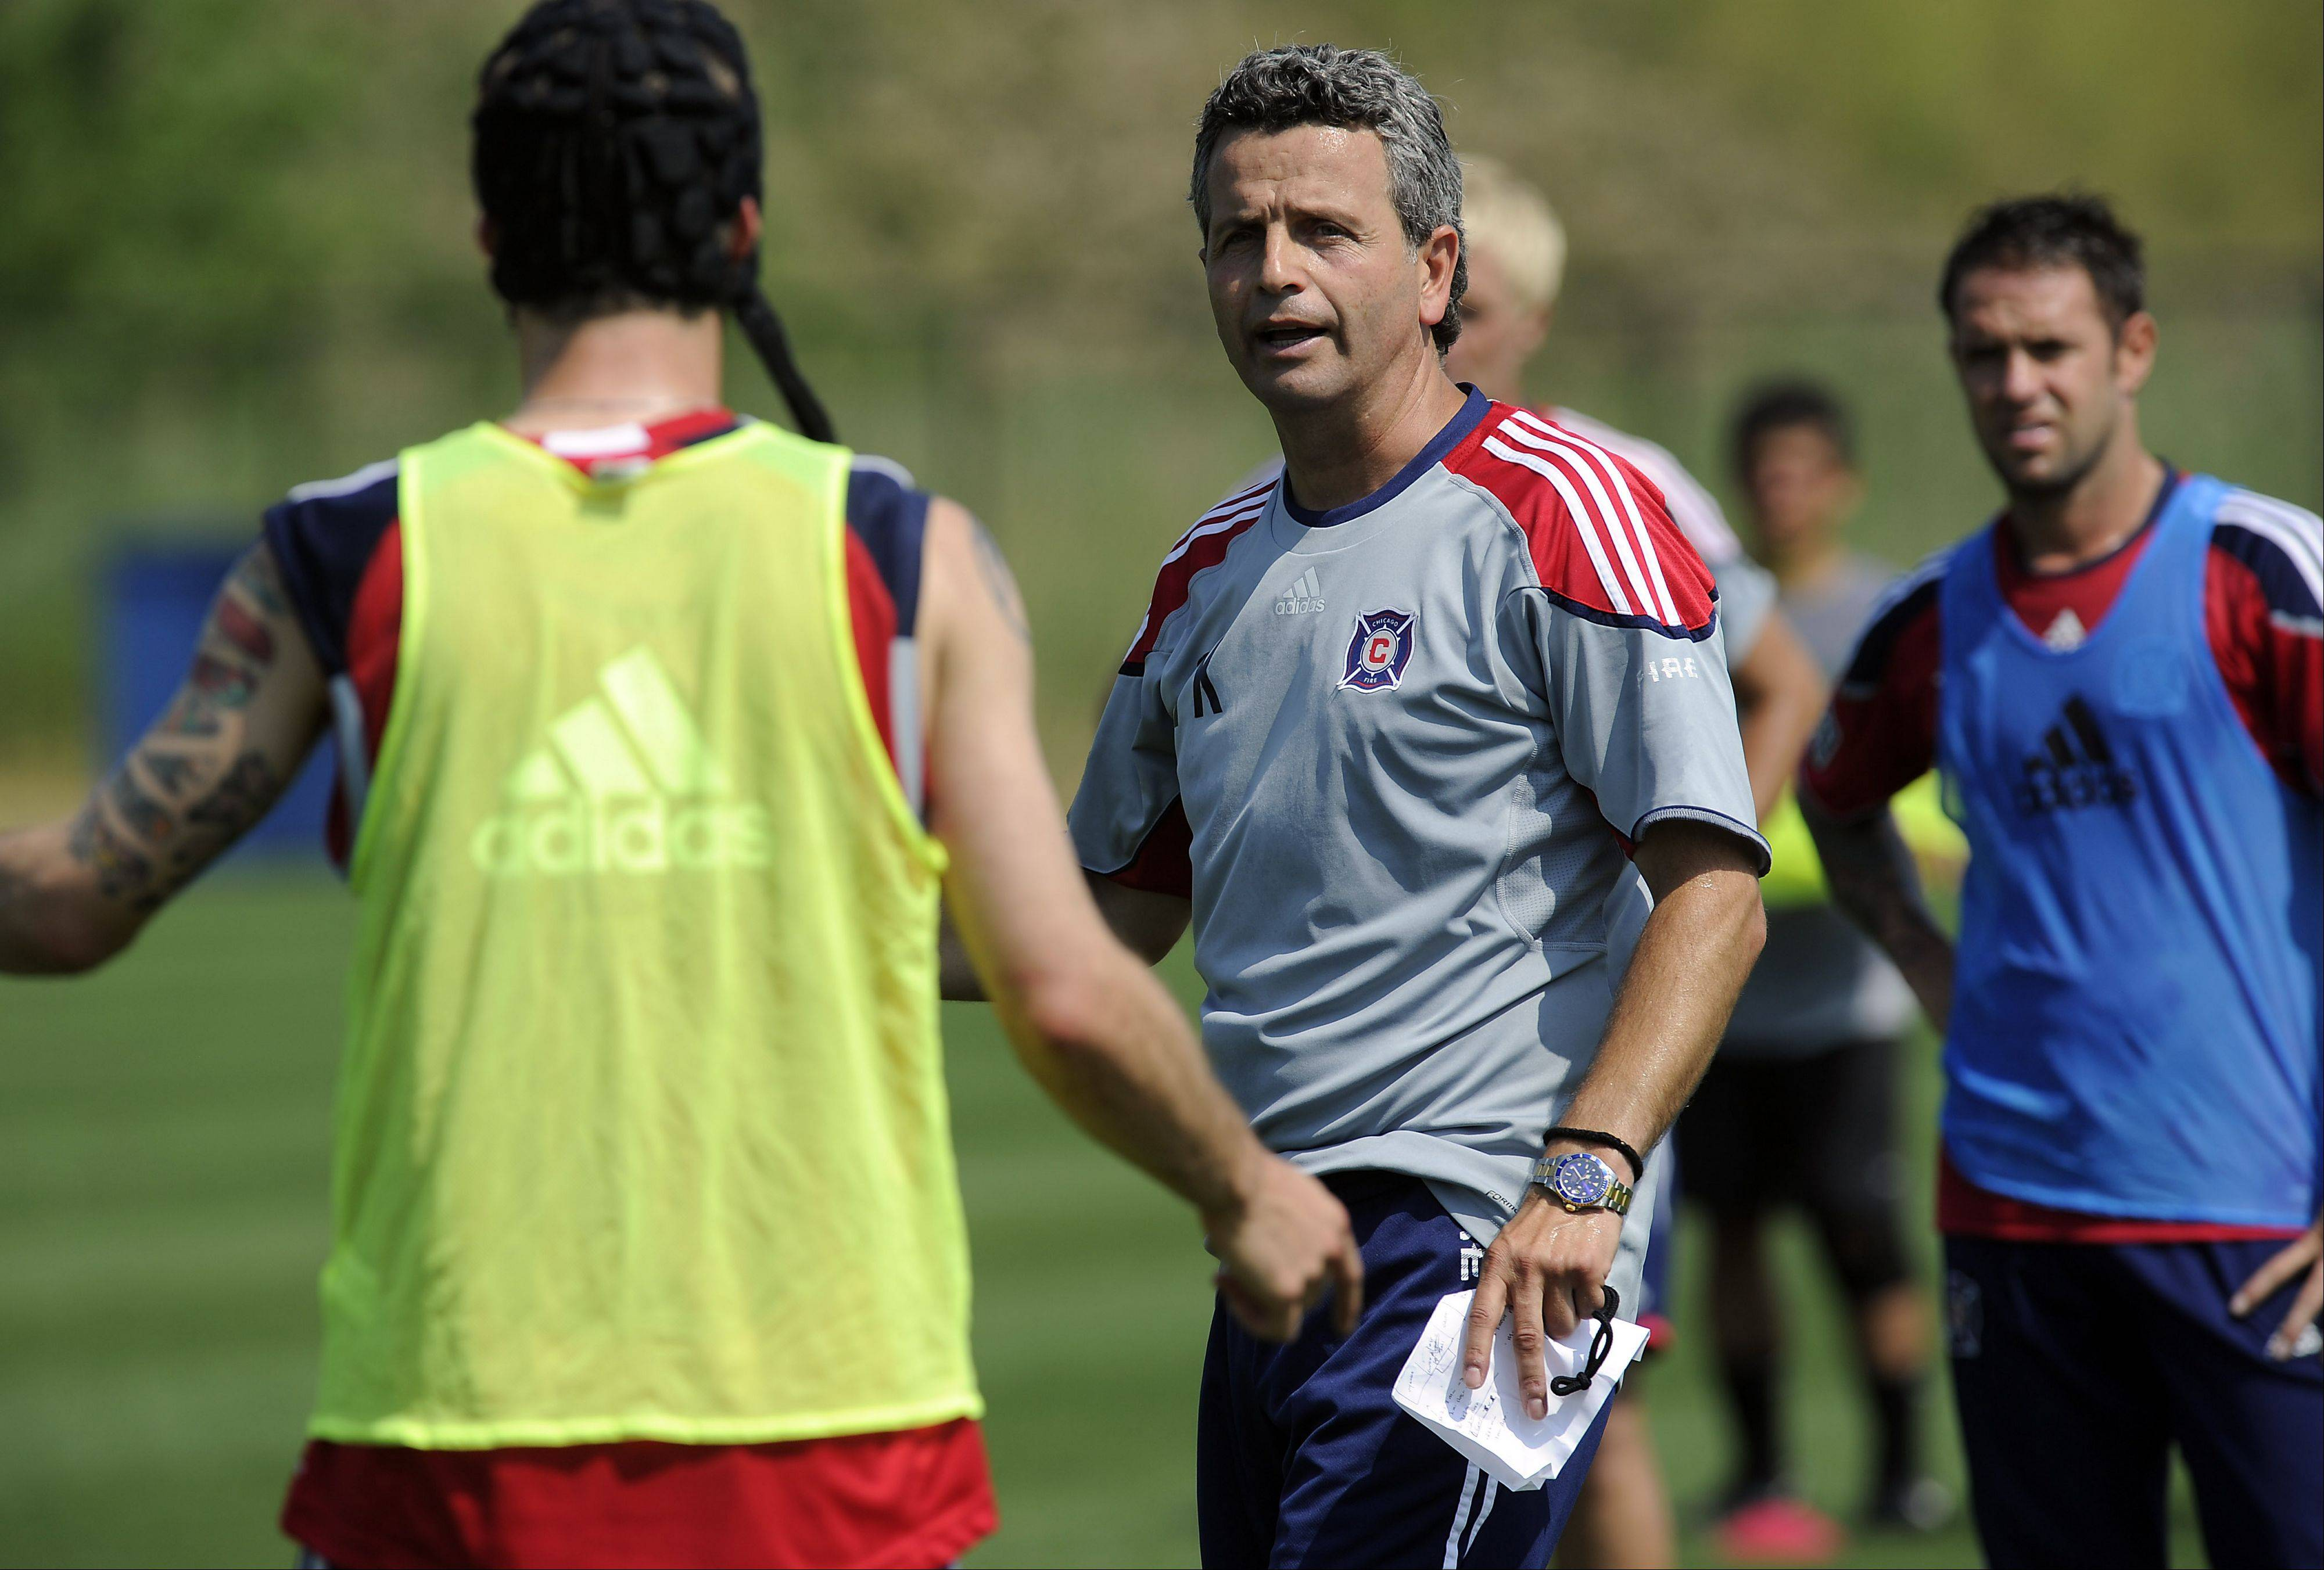 Interim head coach Frank Klopas of the Chicago Fire says the club's focus is on improving over the next 12 games and on the U.S. Open Cup. A decision on hiring a new coach is likely to come after the MLS season ends.